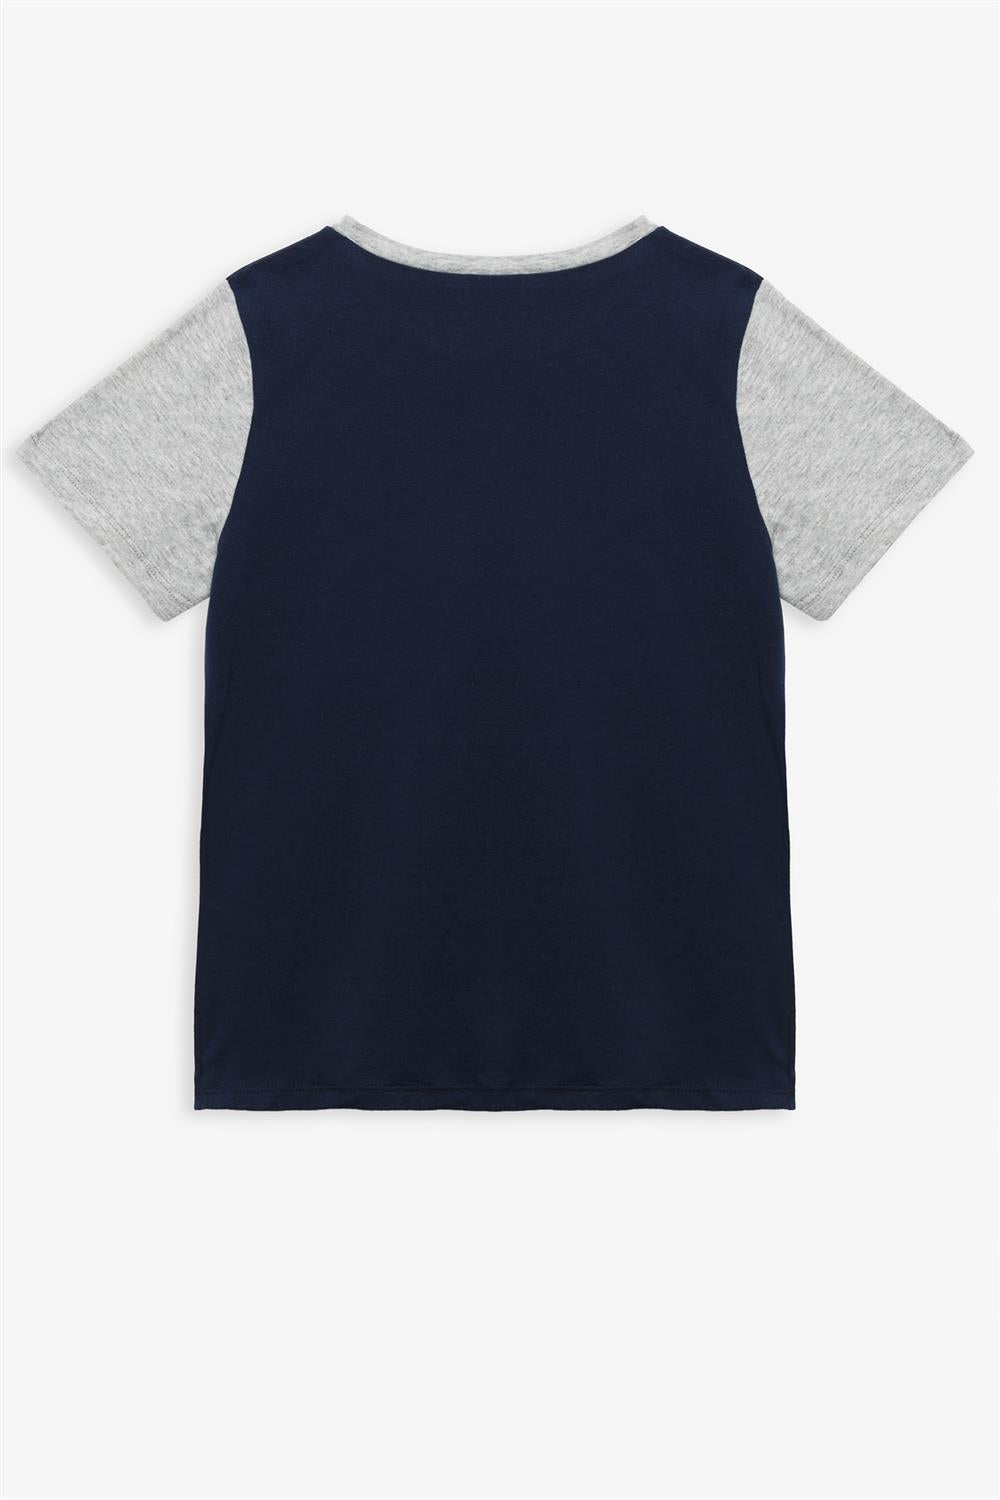 Bardot Junior - Boys Splice Tee